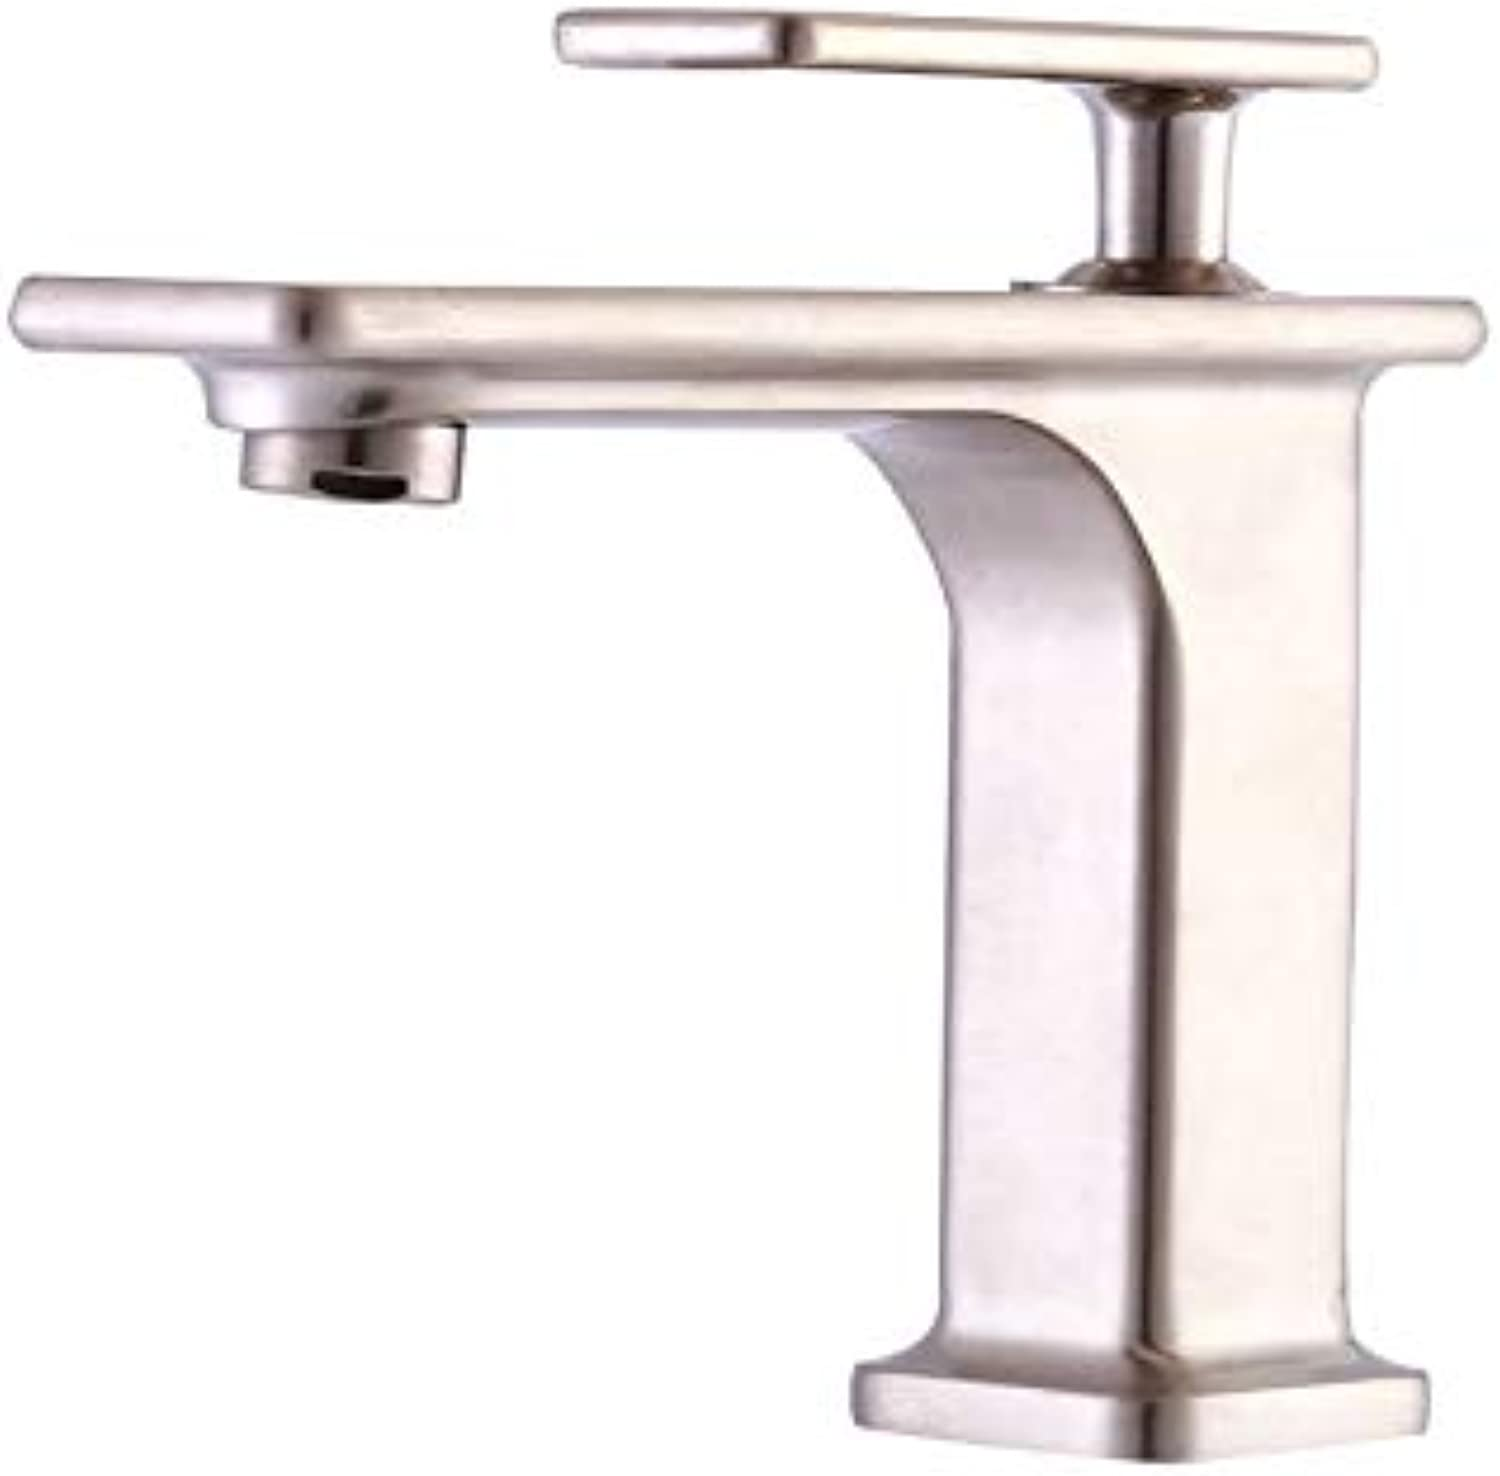 Bathroom Sink Basin Lever Mixer Tap Cold and Hot Water Faucets Mixed Faucets Lead-Free Copper Basin Faucets Hot and Cold